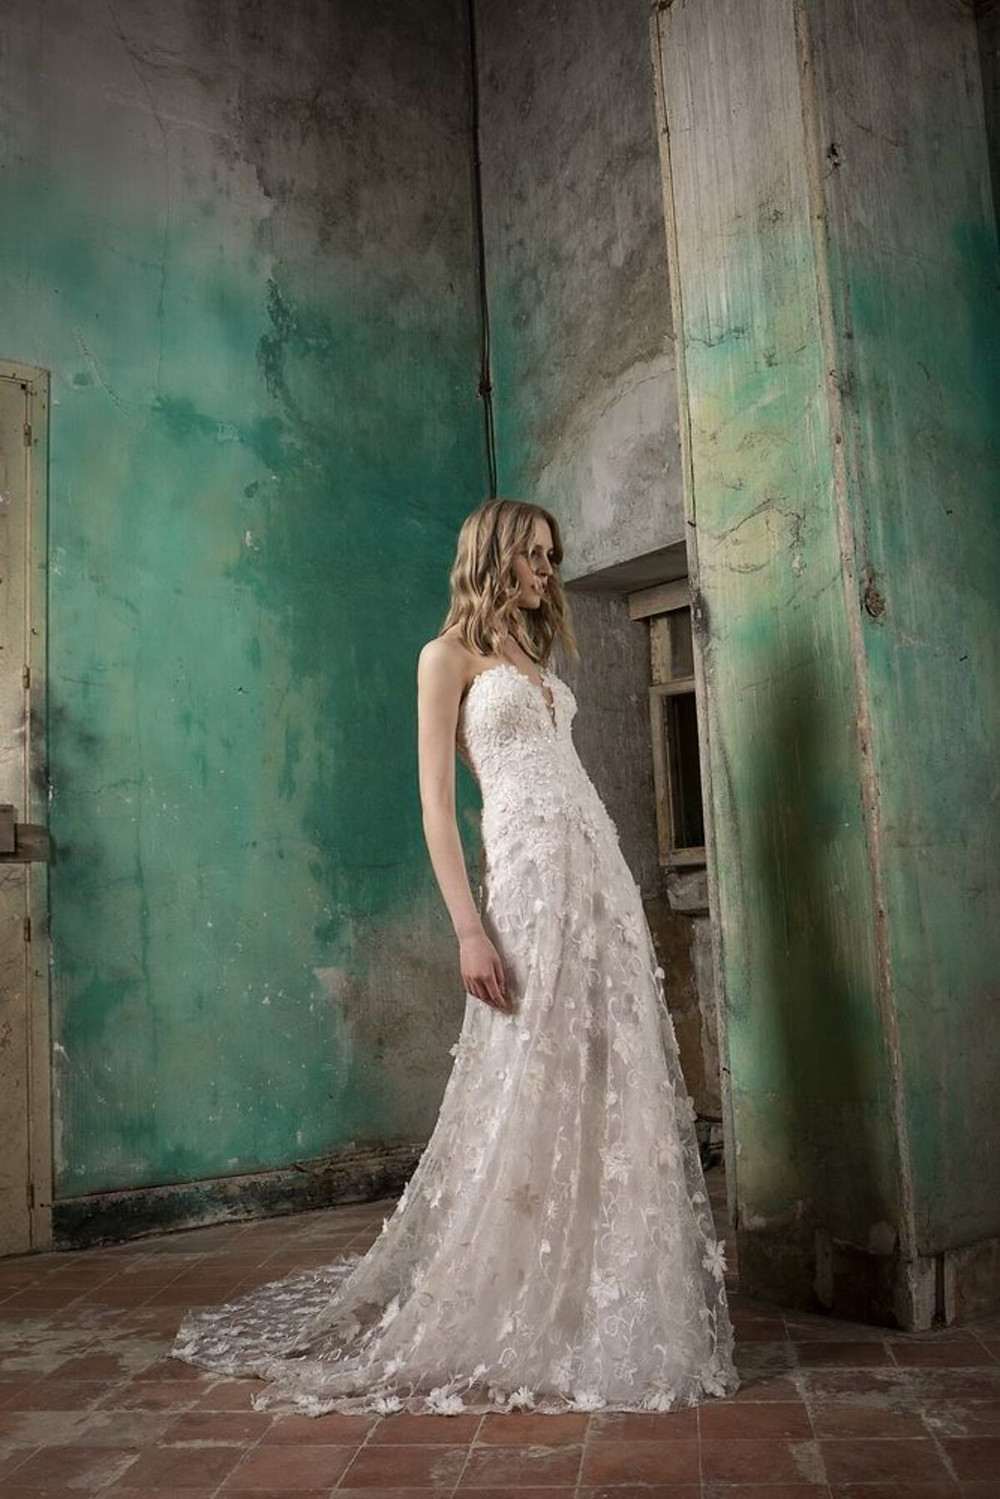 A flared wedding dress made of lace enriched with 3-dimensional flowers